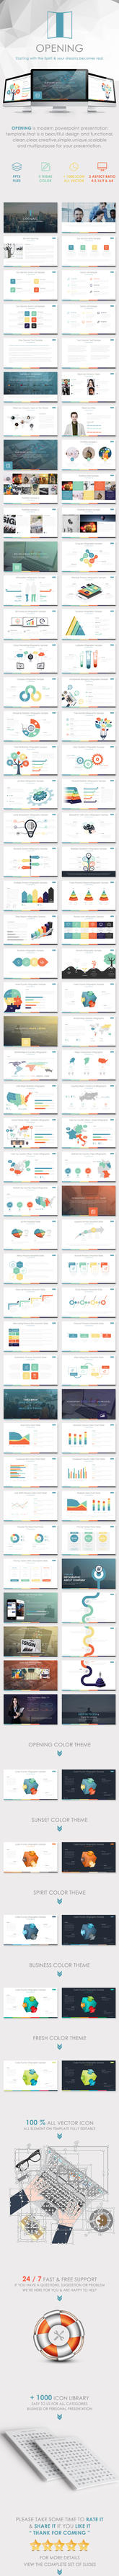 OPENING PLANS - Powerpoint Presentation Template by velozstar